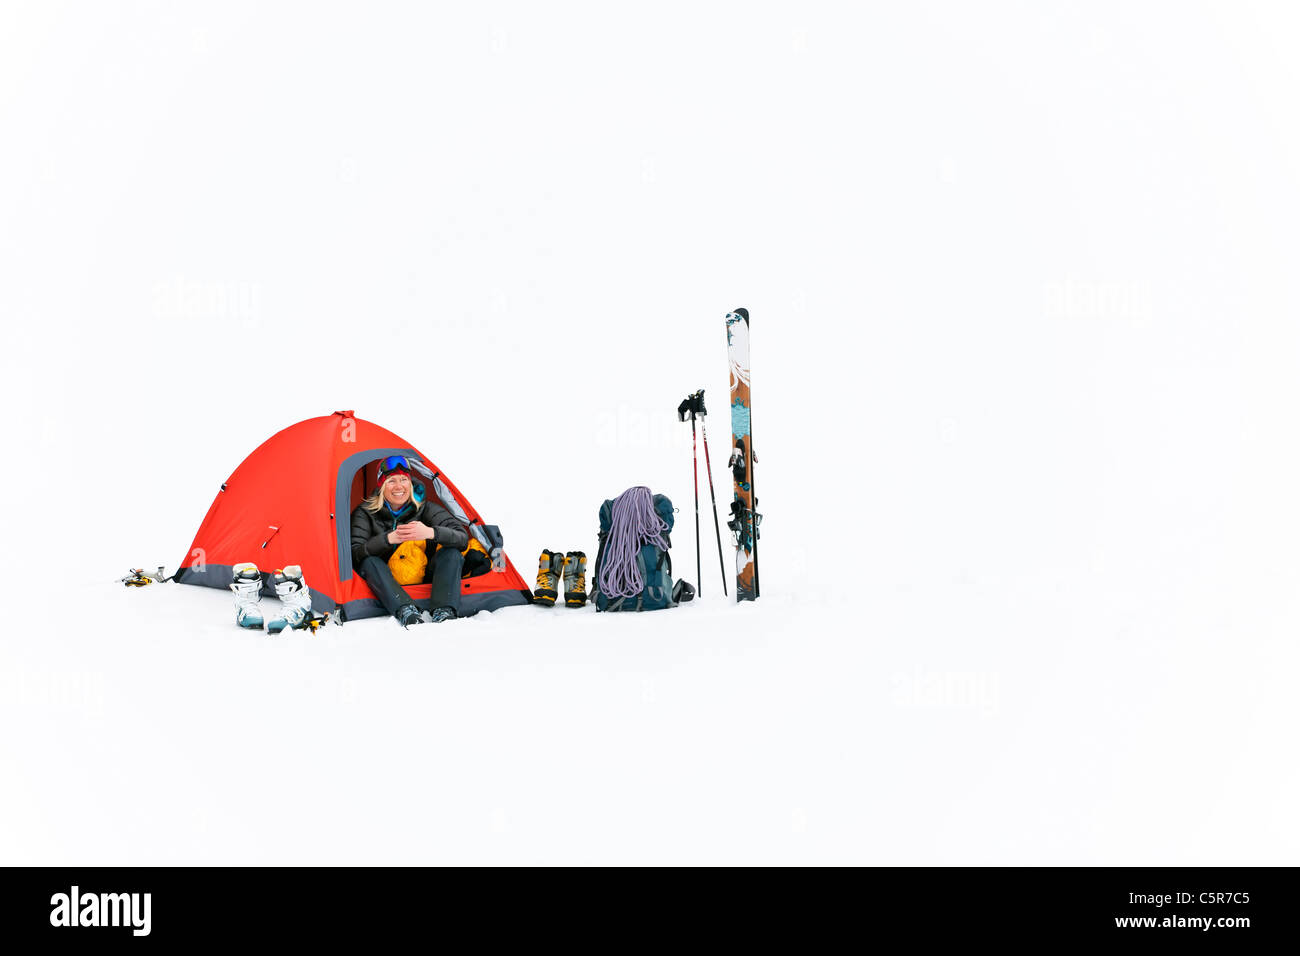 A happy camper camping on snow. - Stock Image